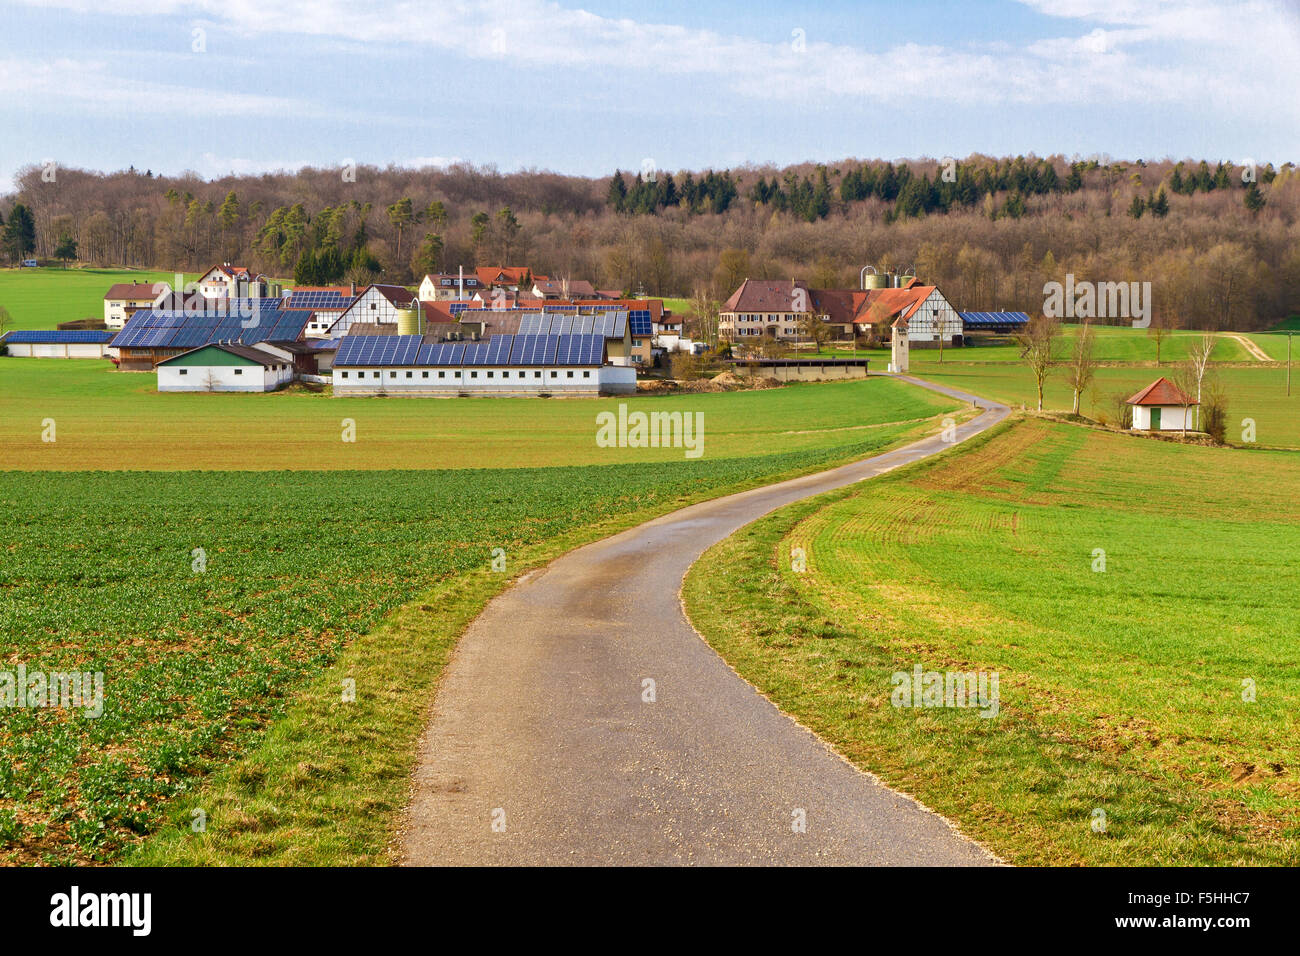 Little village with modern solar cells - Stock Image